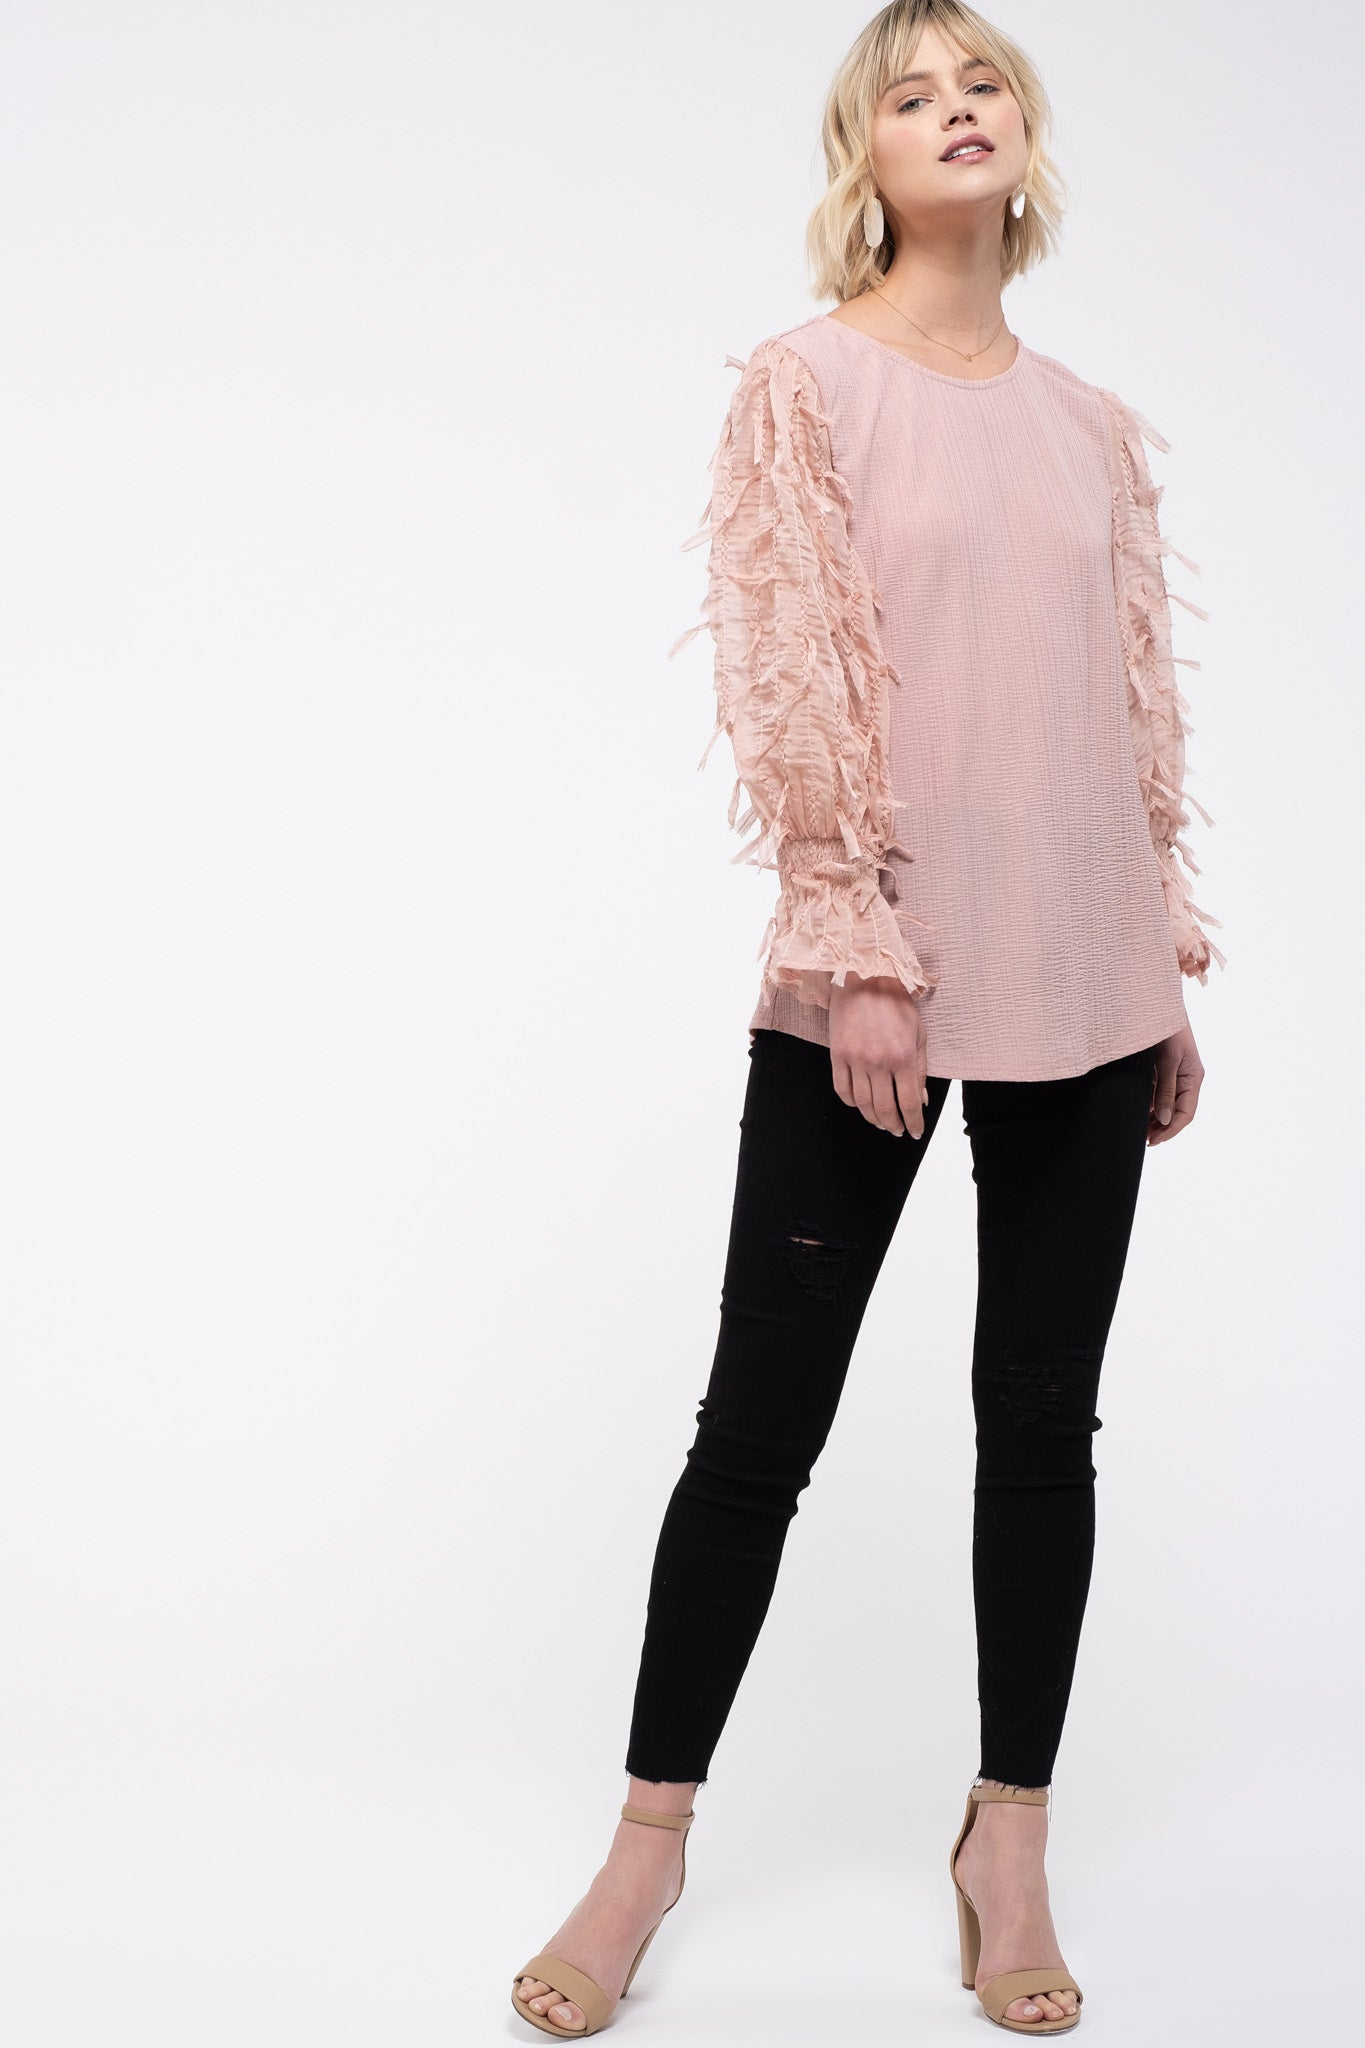 3D Textured Sleeve Top